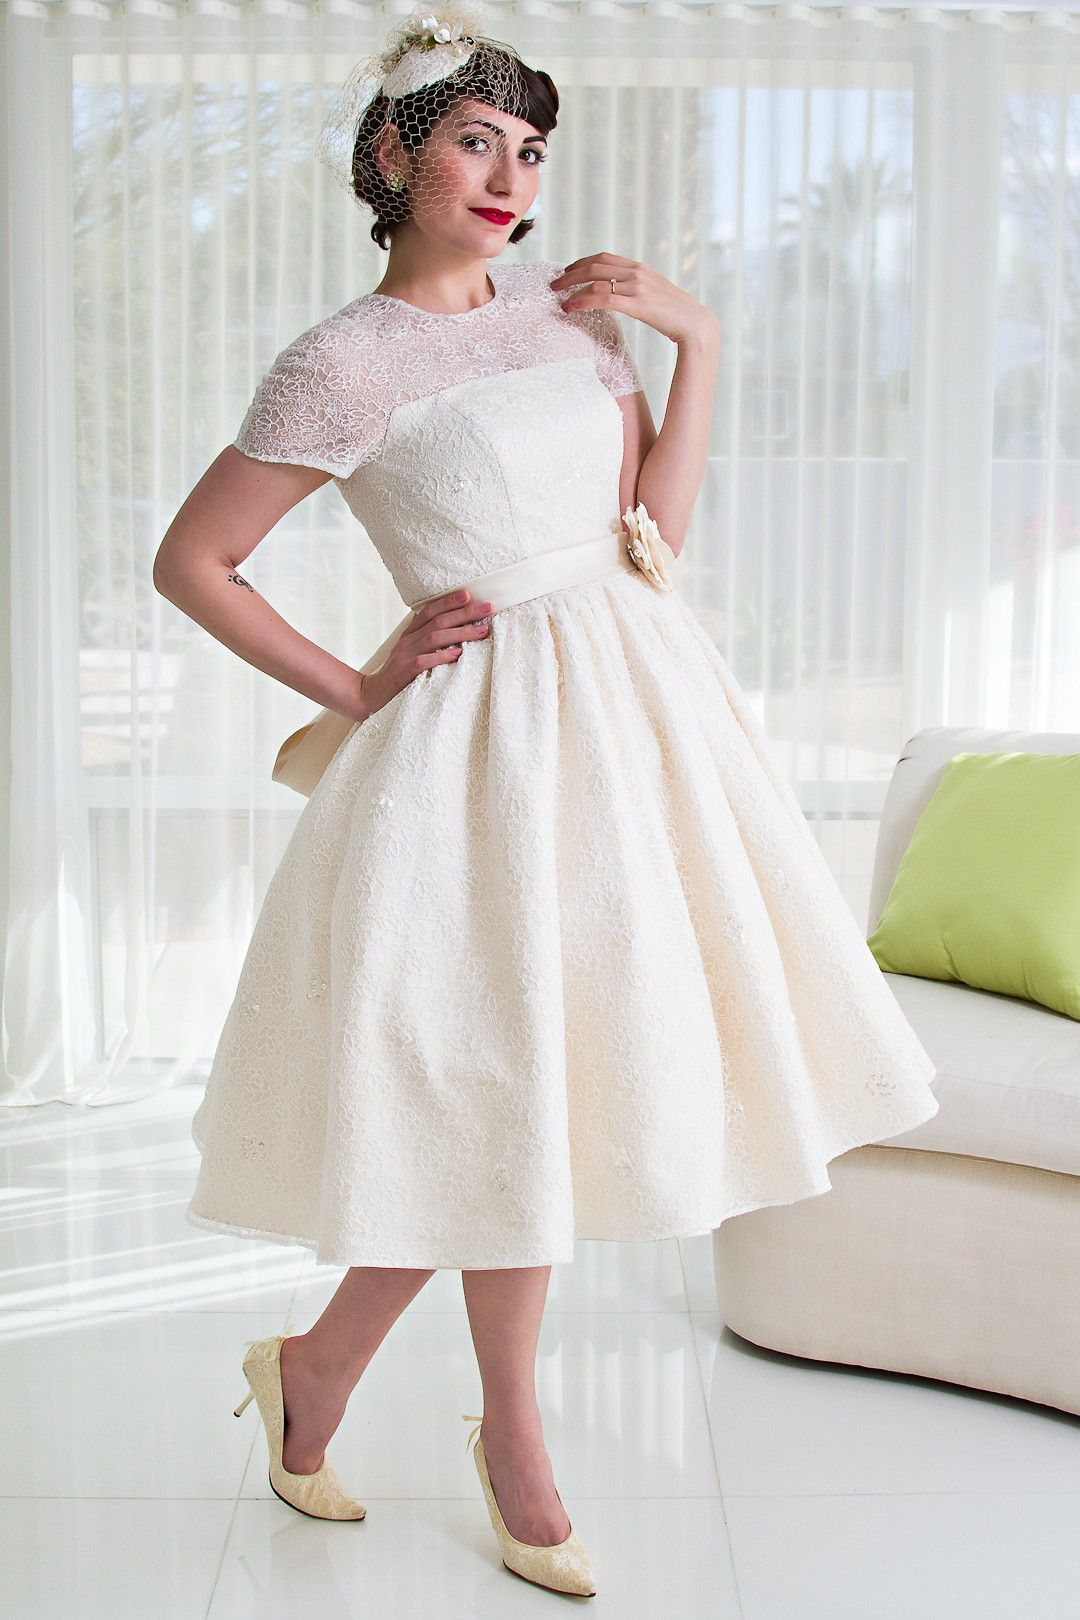 Short wedding dress dolly couture san marino dollycouture